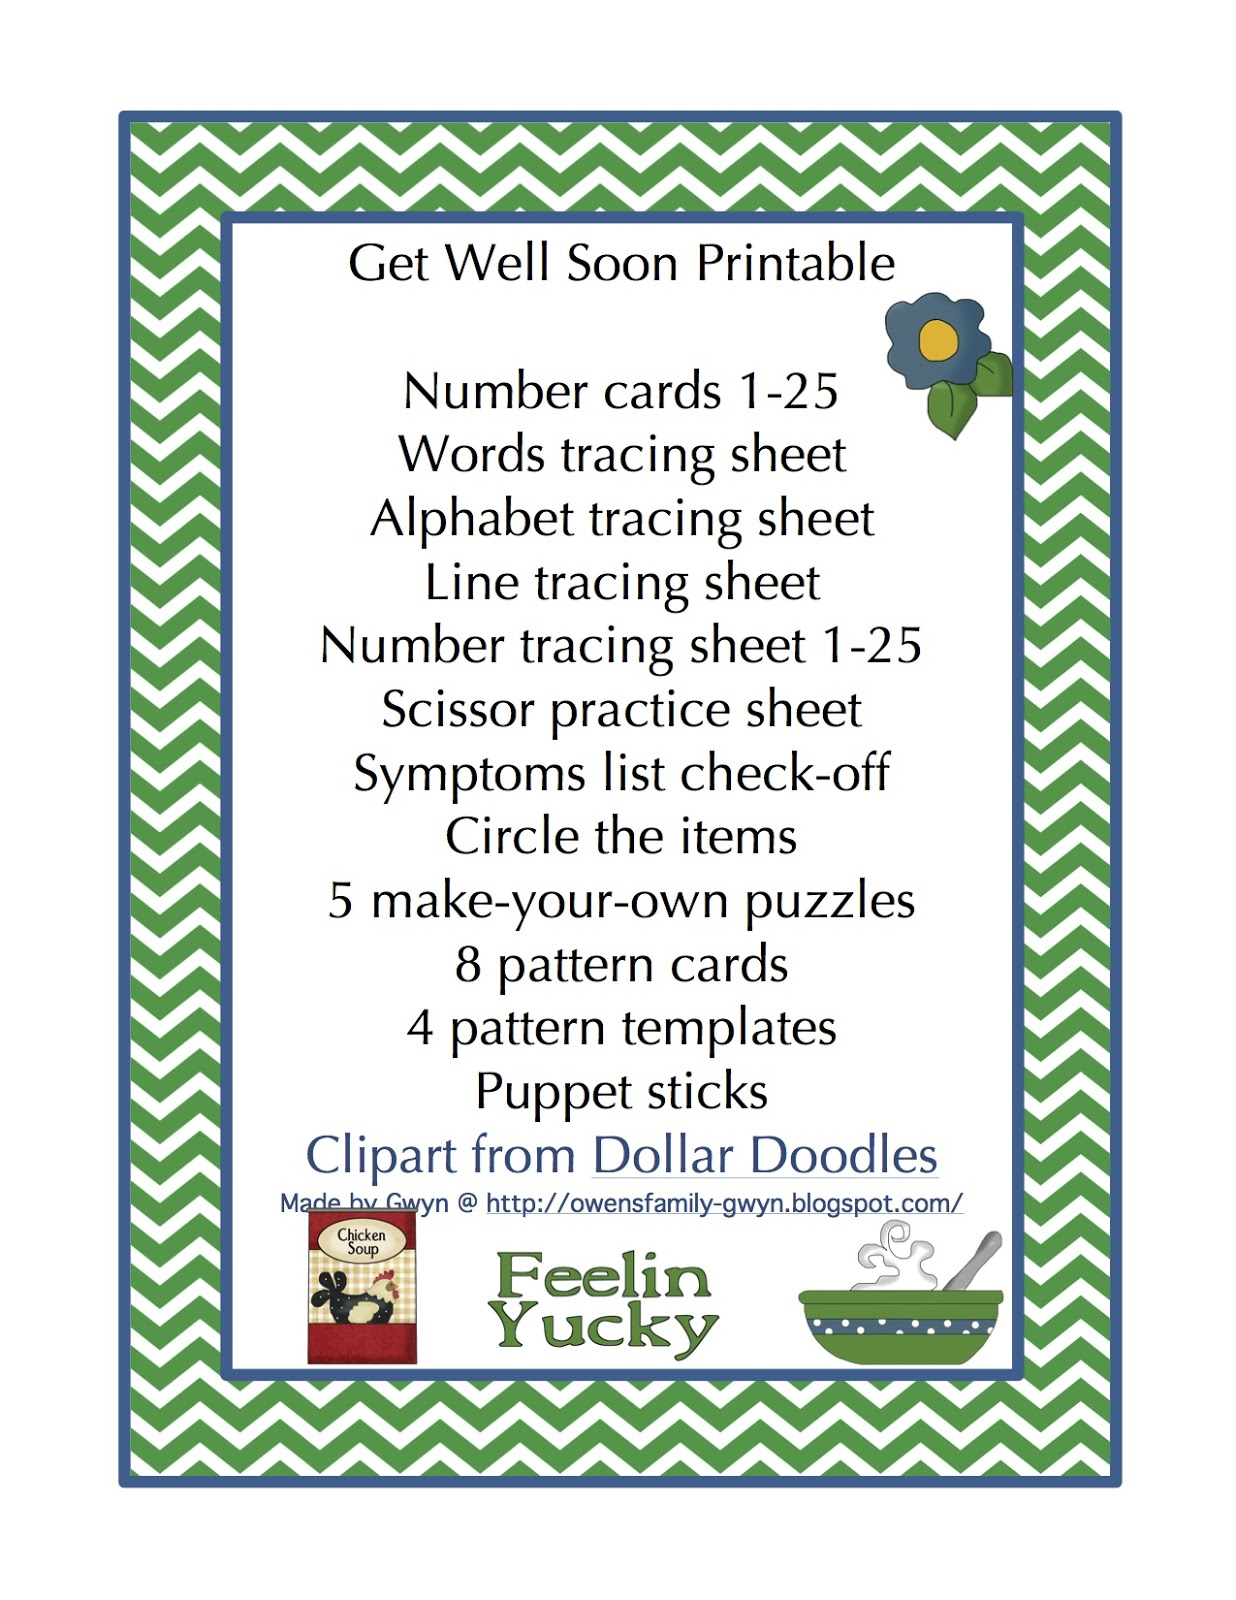 Printable get well greeting cards description